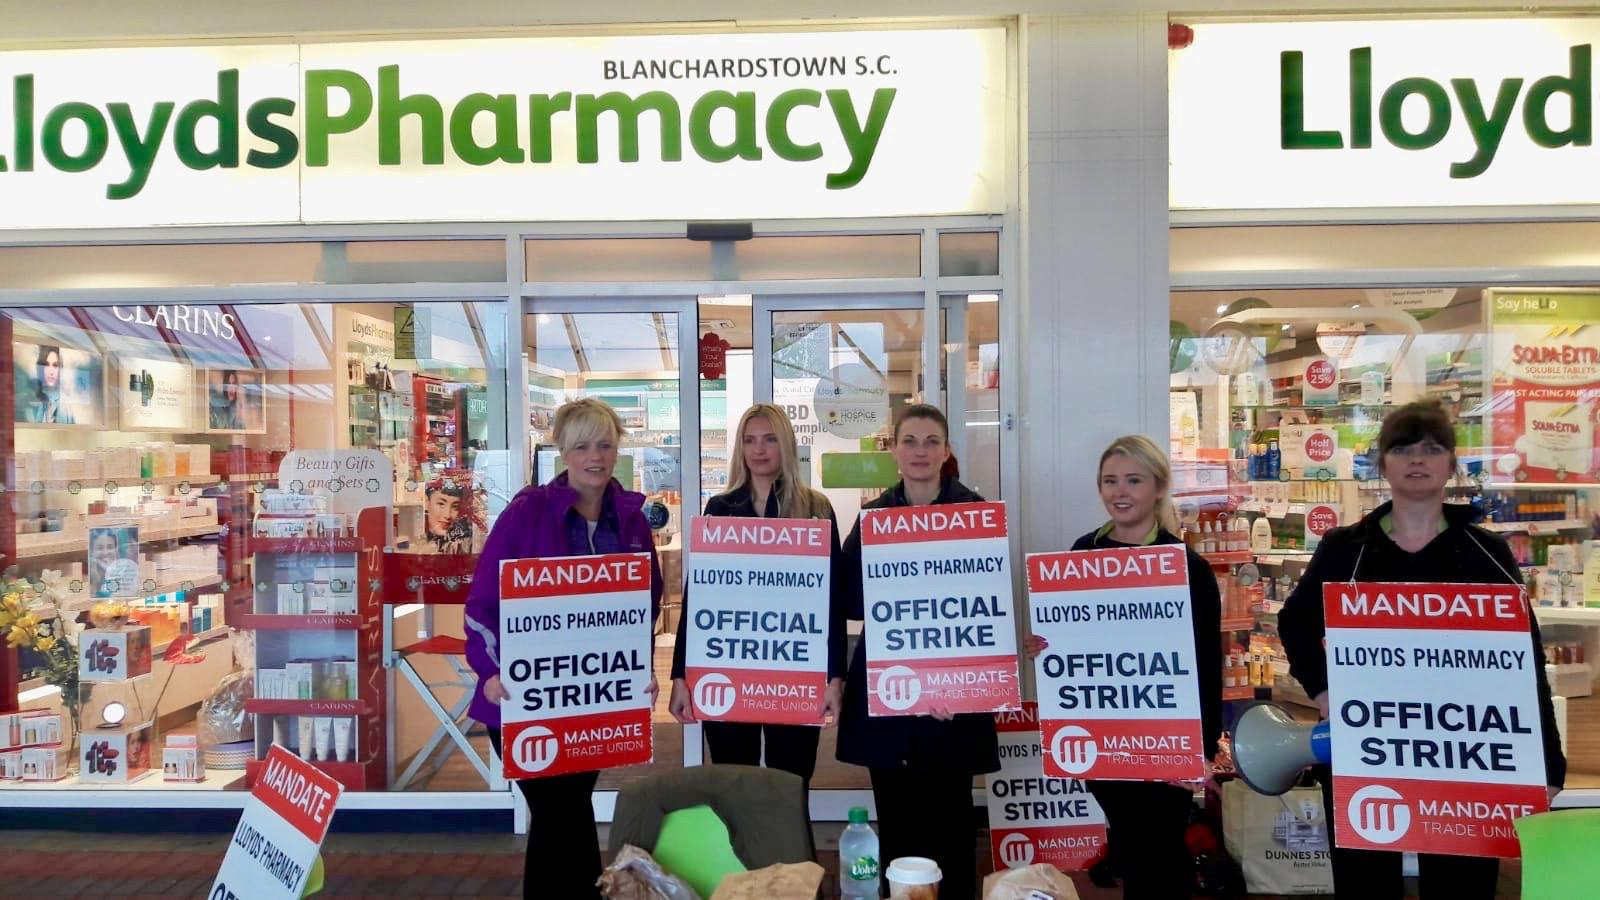 LloydsPharmacy workers on strike.